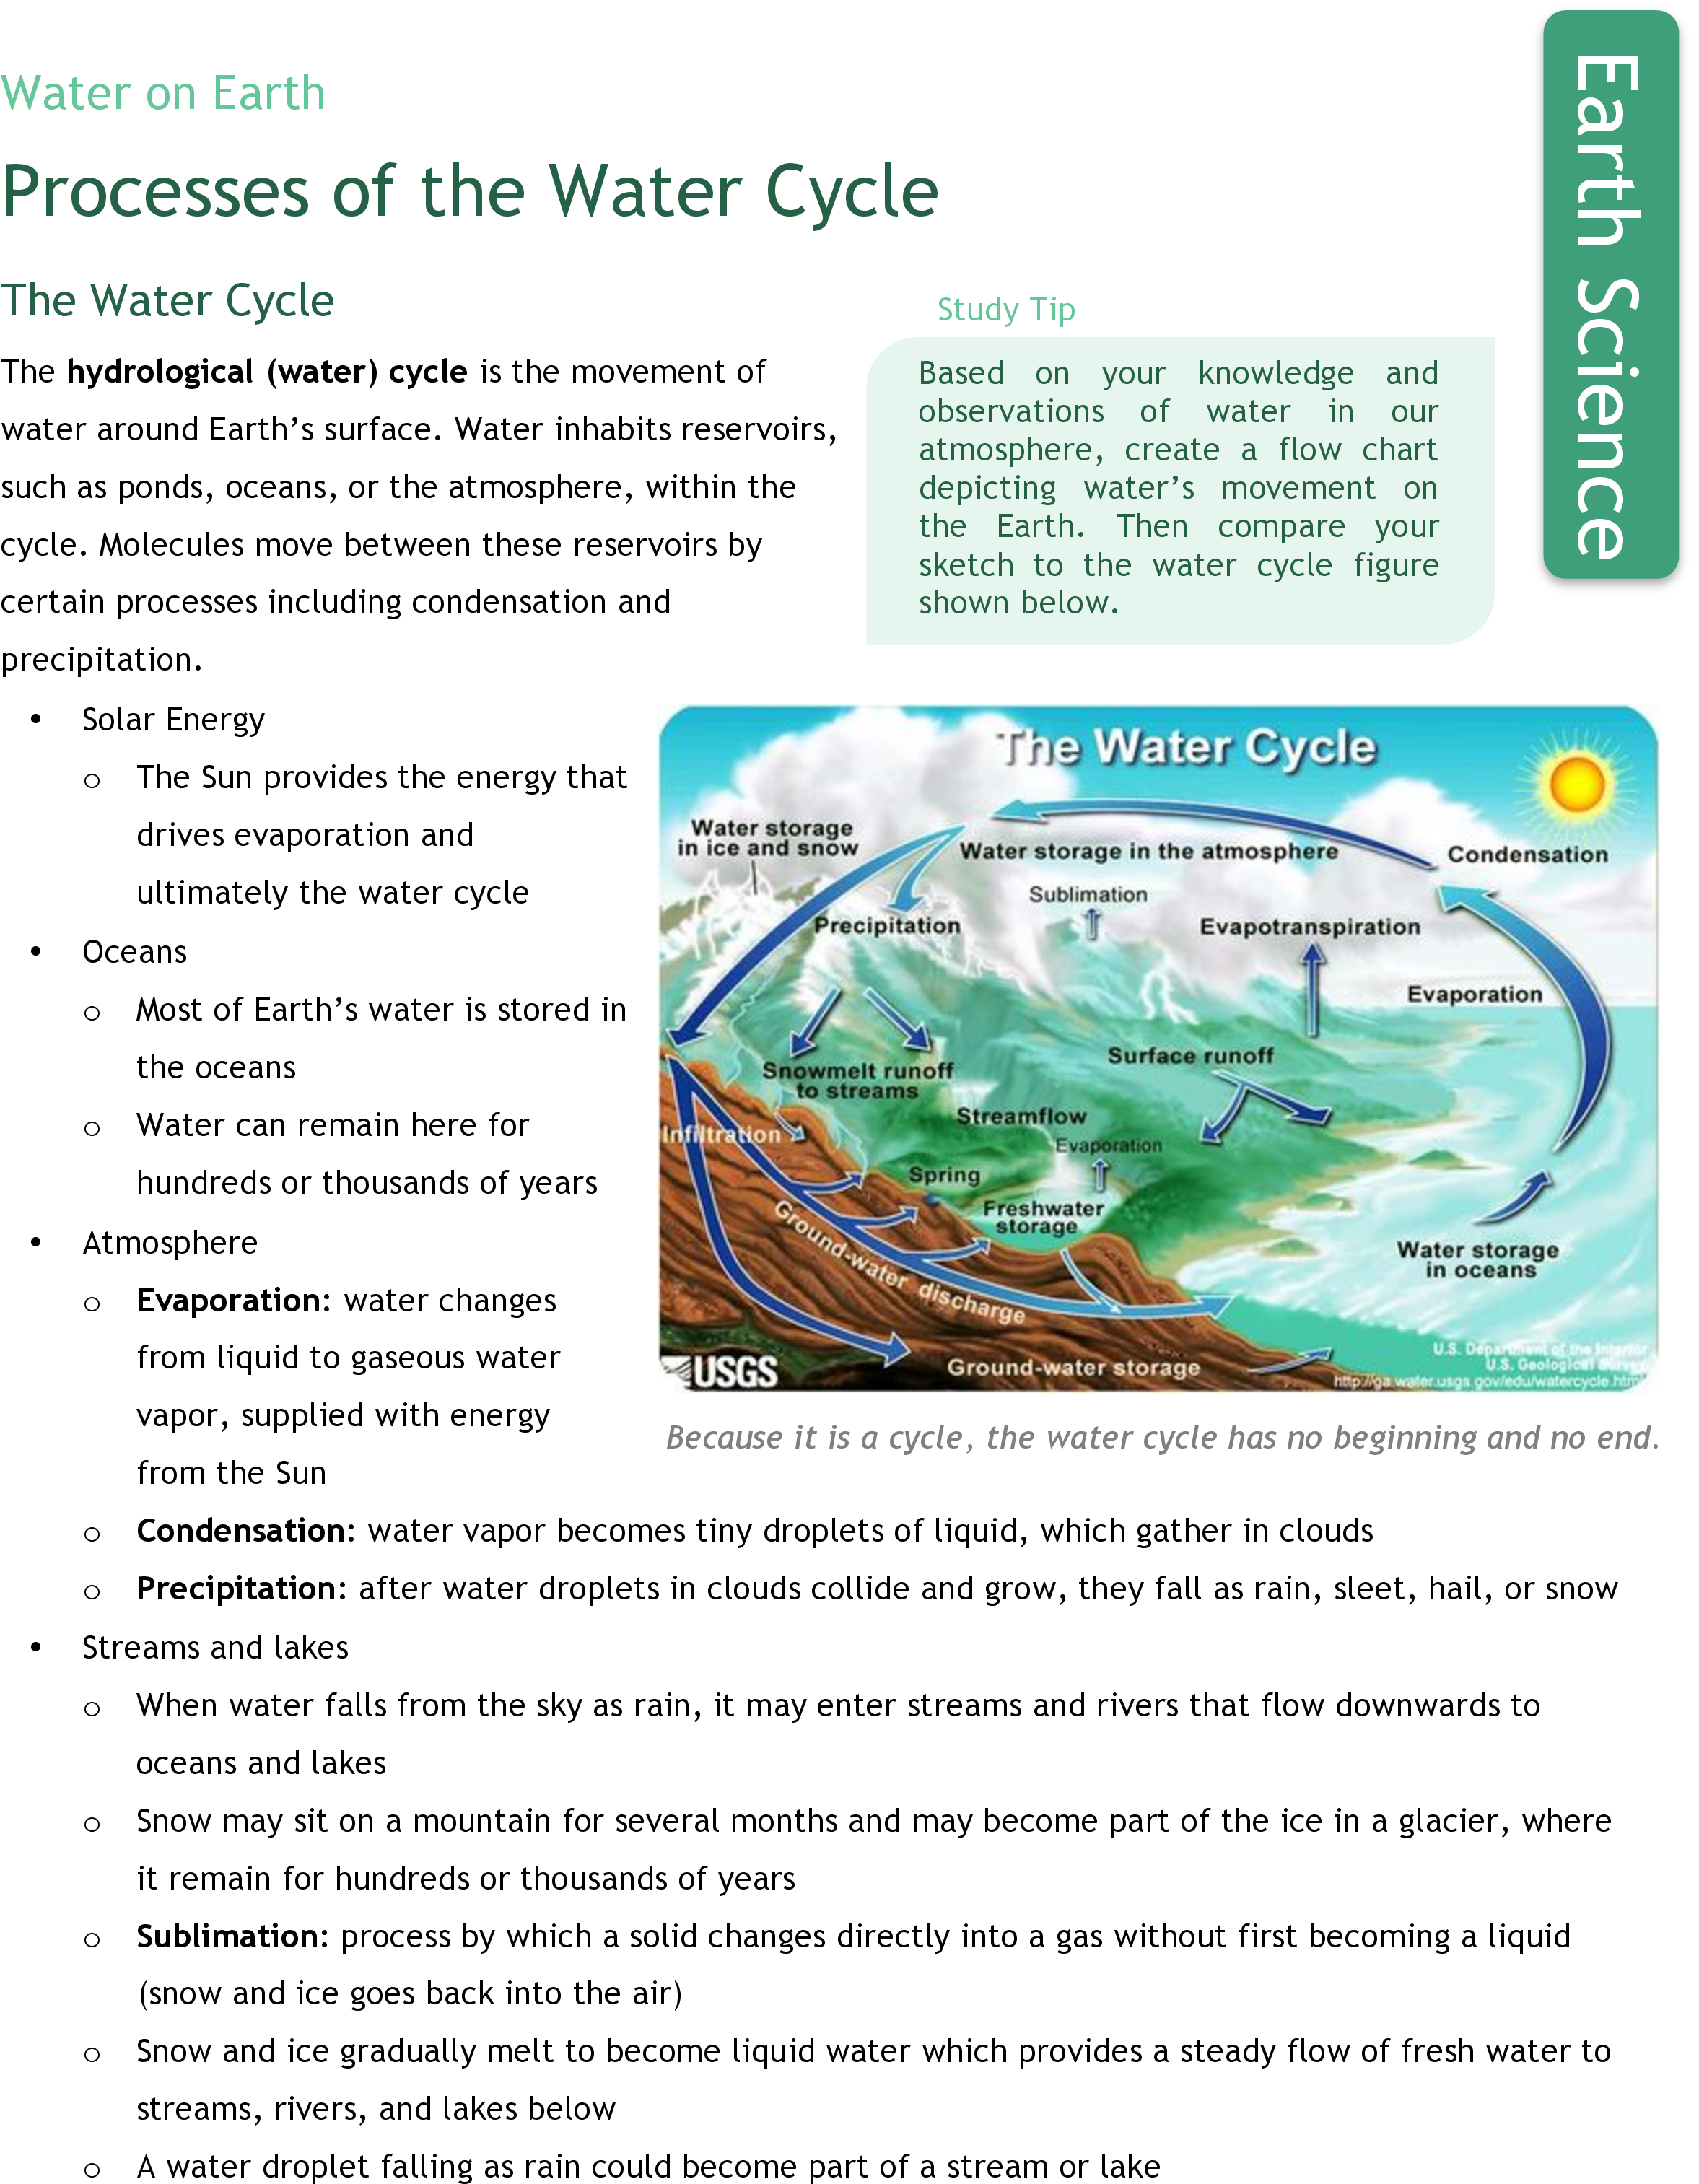 water cycle study water printable water cycle water cycle water cycle study water printable water cycle water cycle water cycle process the water cycle process steps and many others about the water cycle